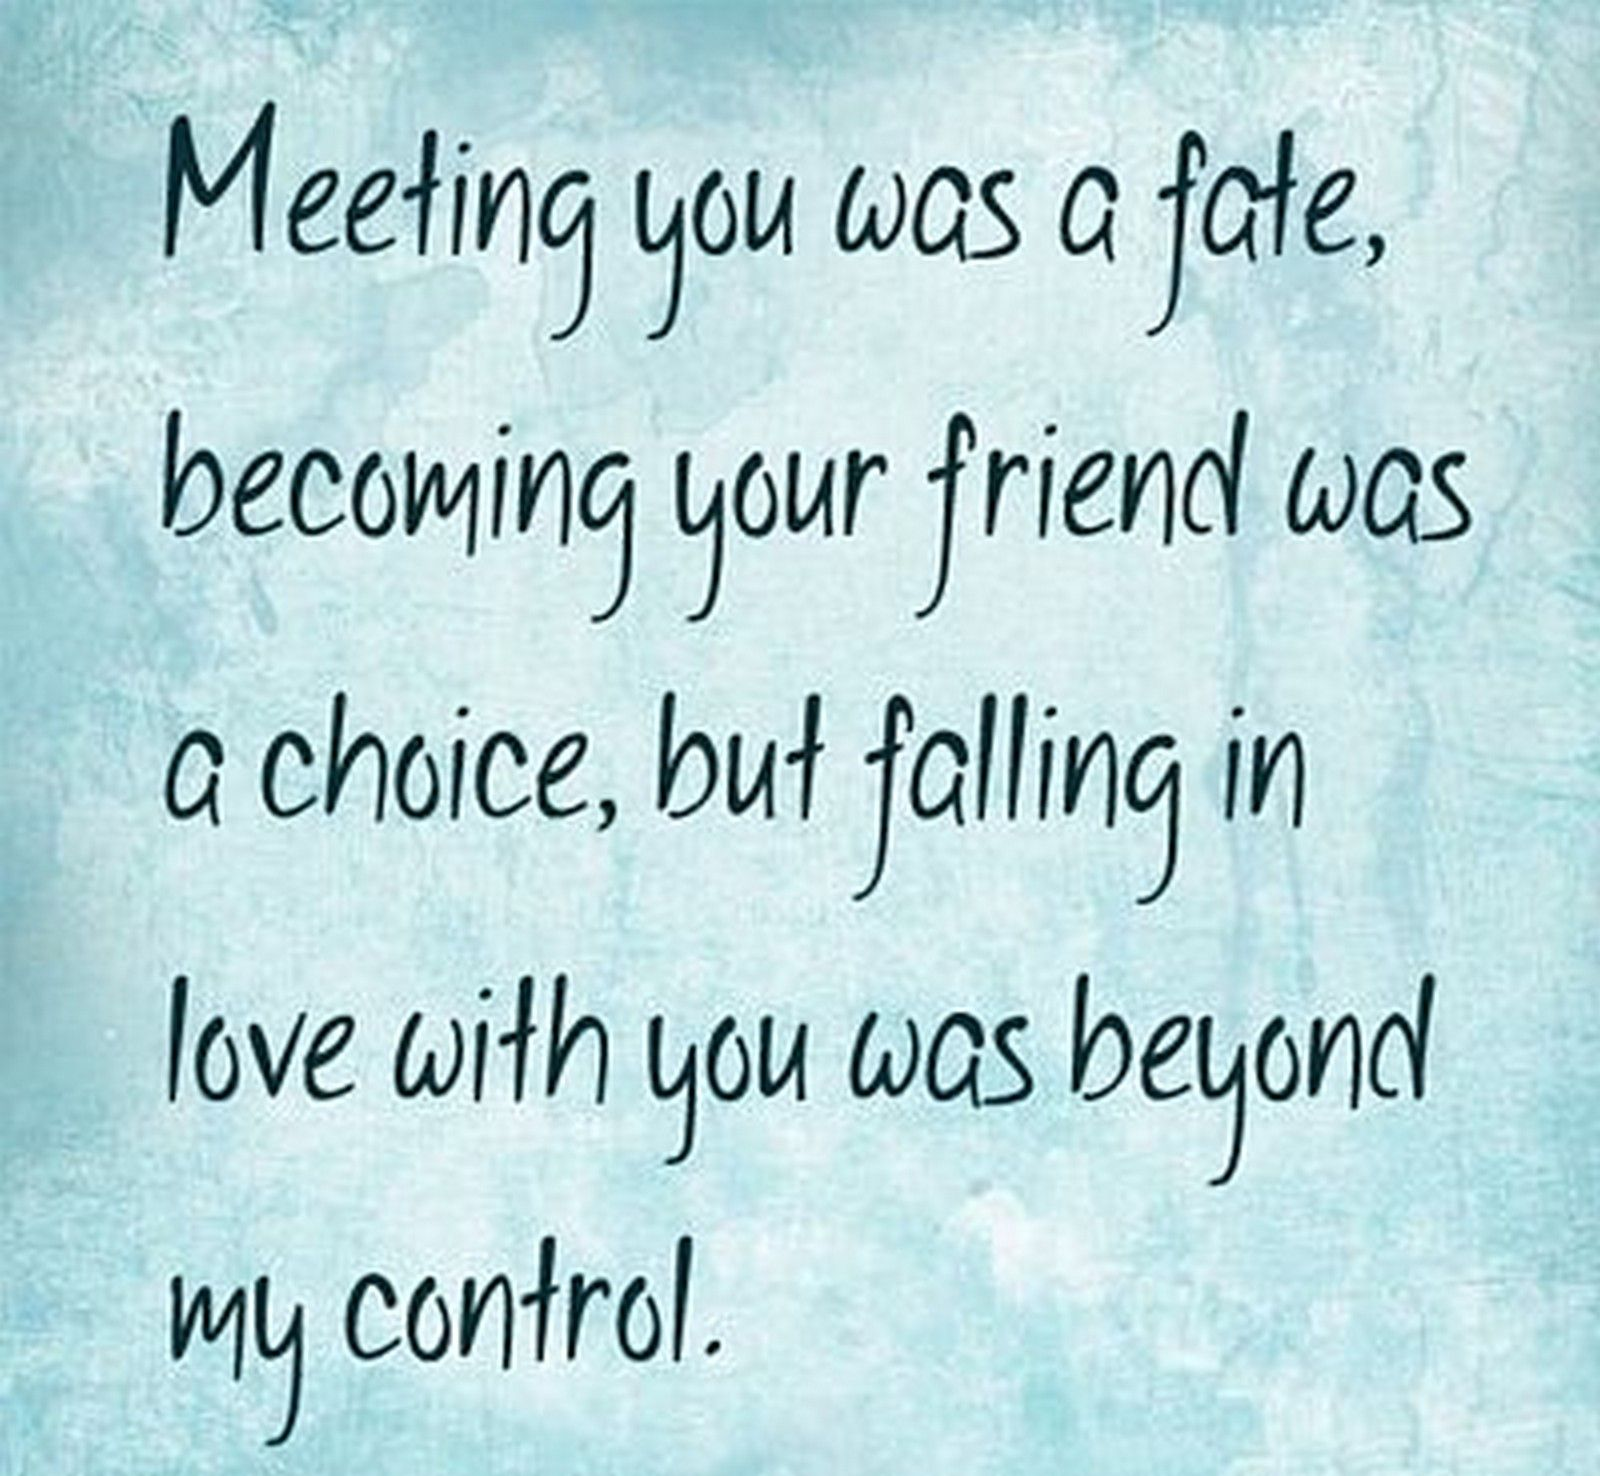 Falling In Love With Your Best Friend Quotes 55 Romantic Quotes You'll Want To Share With The Love Of Your Life